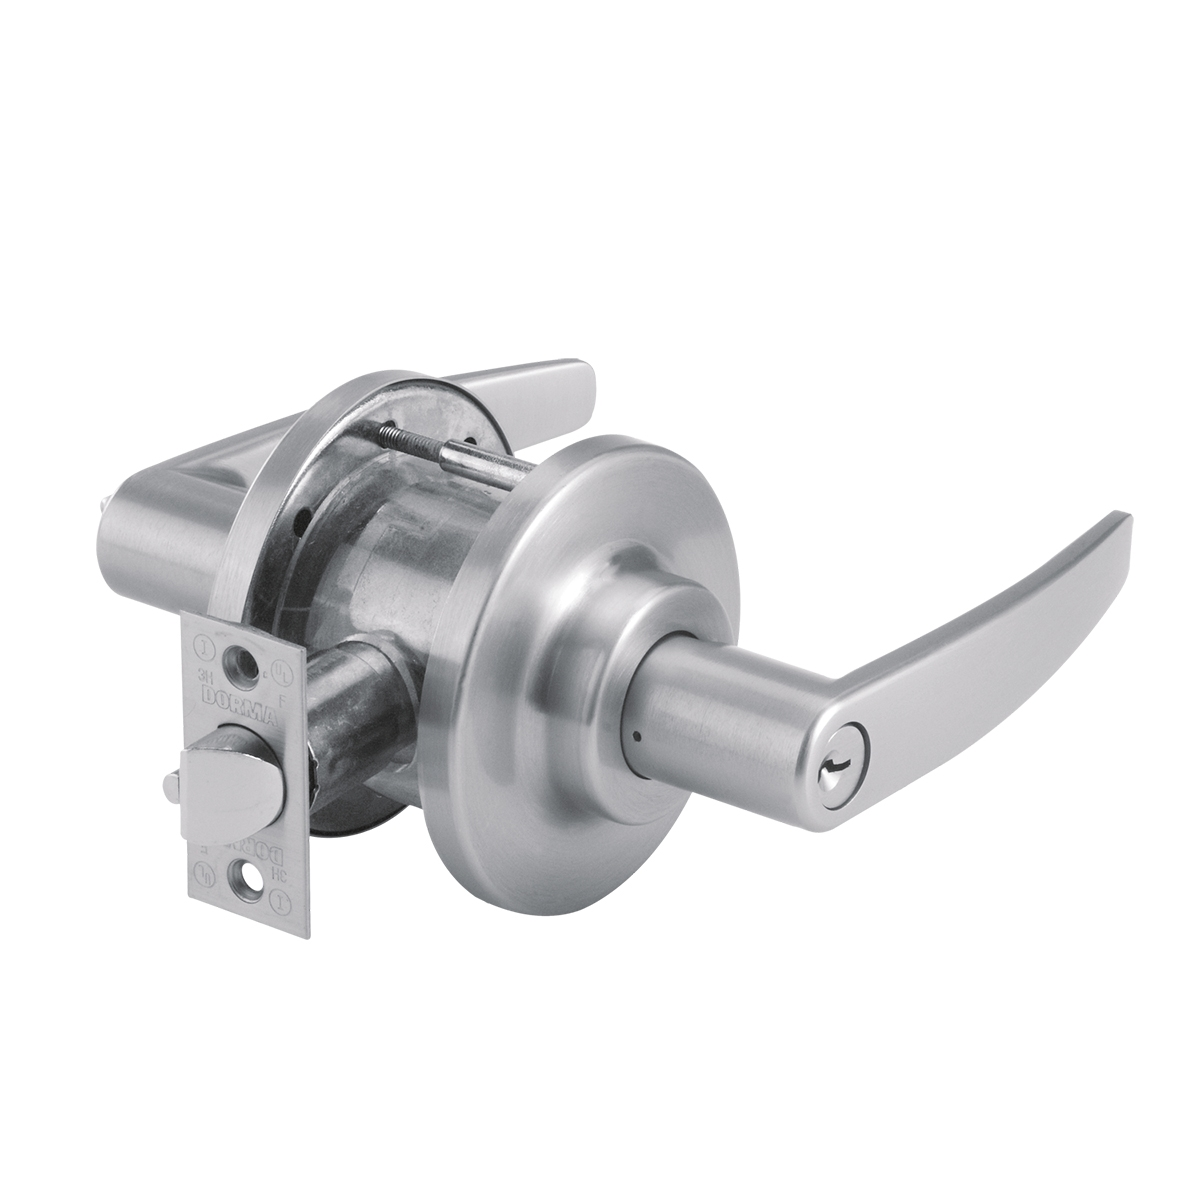 DORMA CL701LGE626 - CL701 SINGLE DUMMY LEVER, LG LEVER, E ROSE, 2-3/4 IN BACKSET, 626 SATIN CHROME